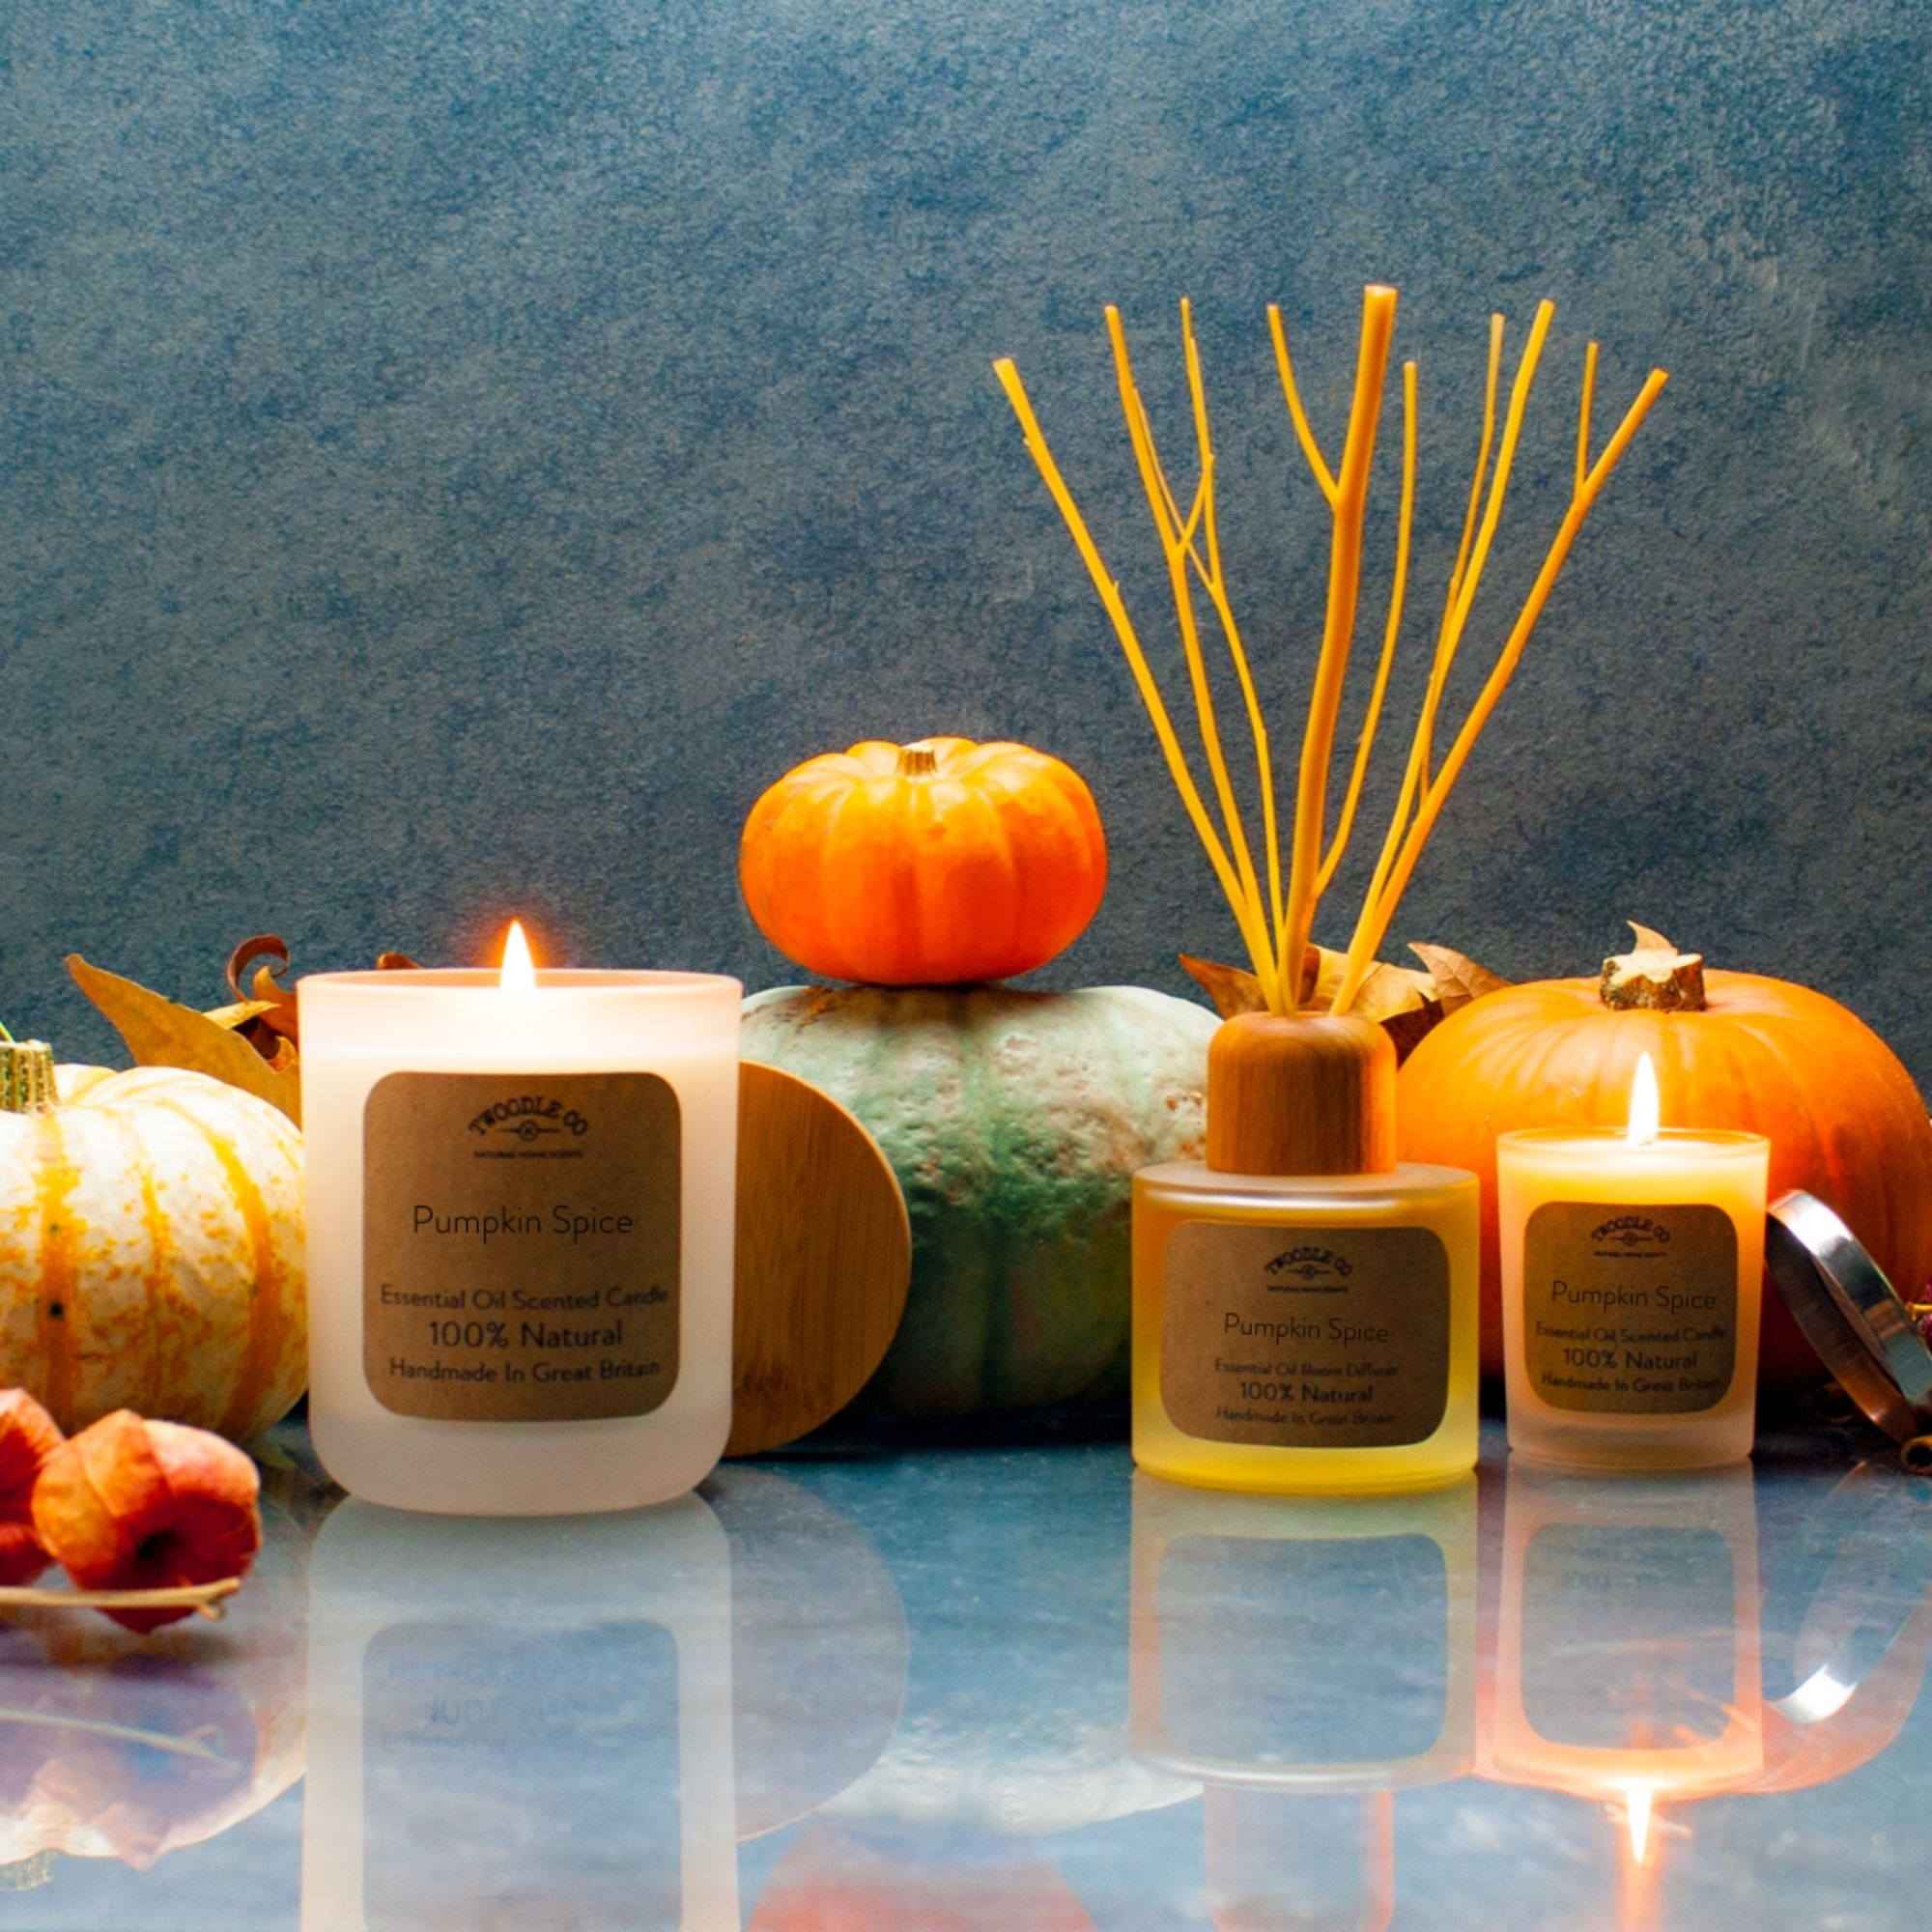 Pumpkin Spice Large Scented Candle 70 Hour